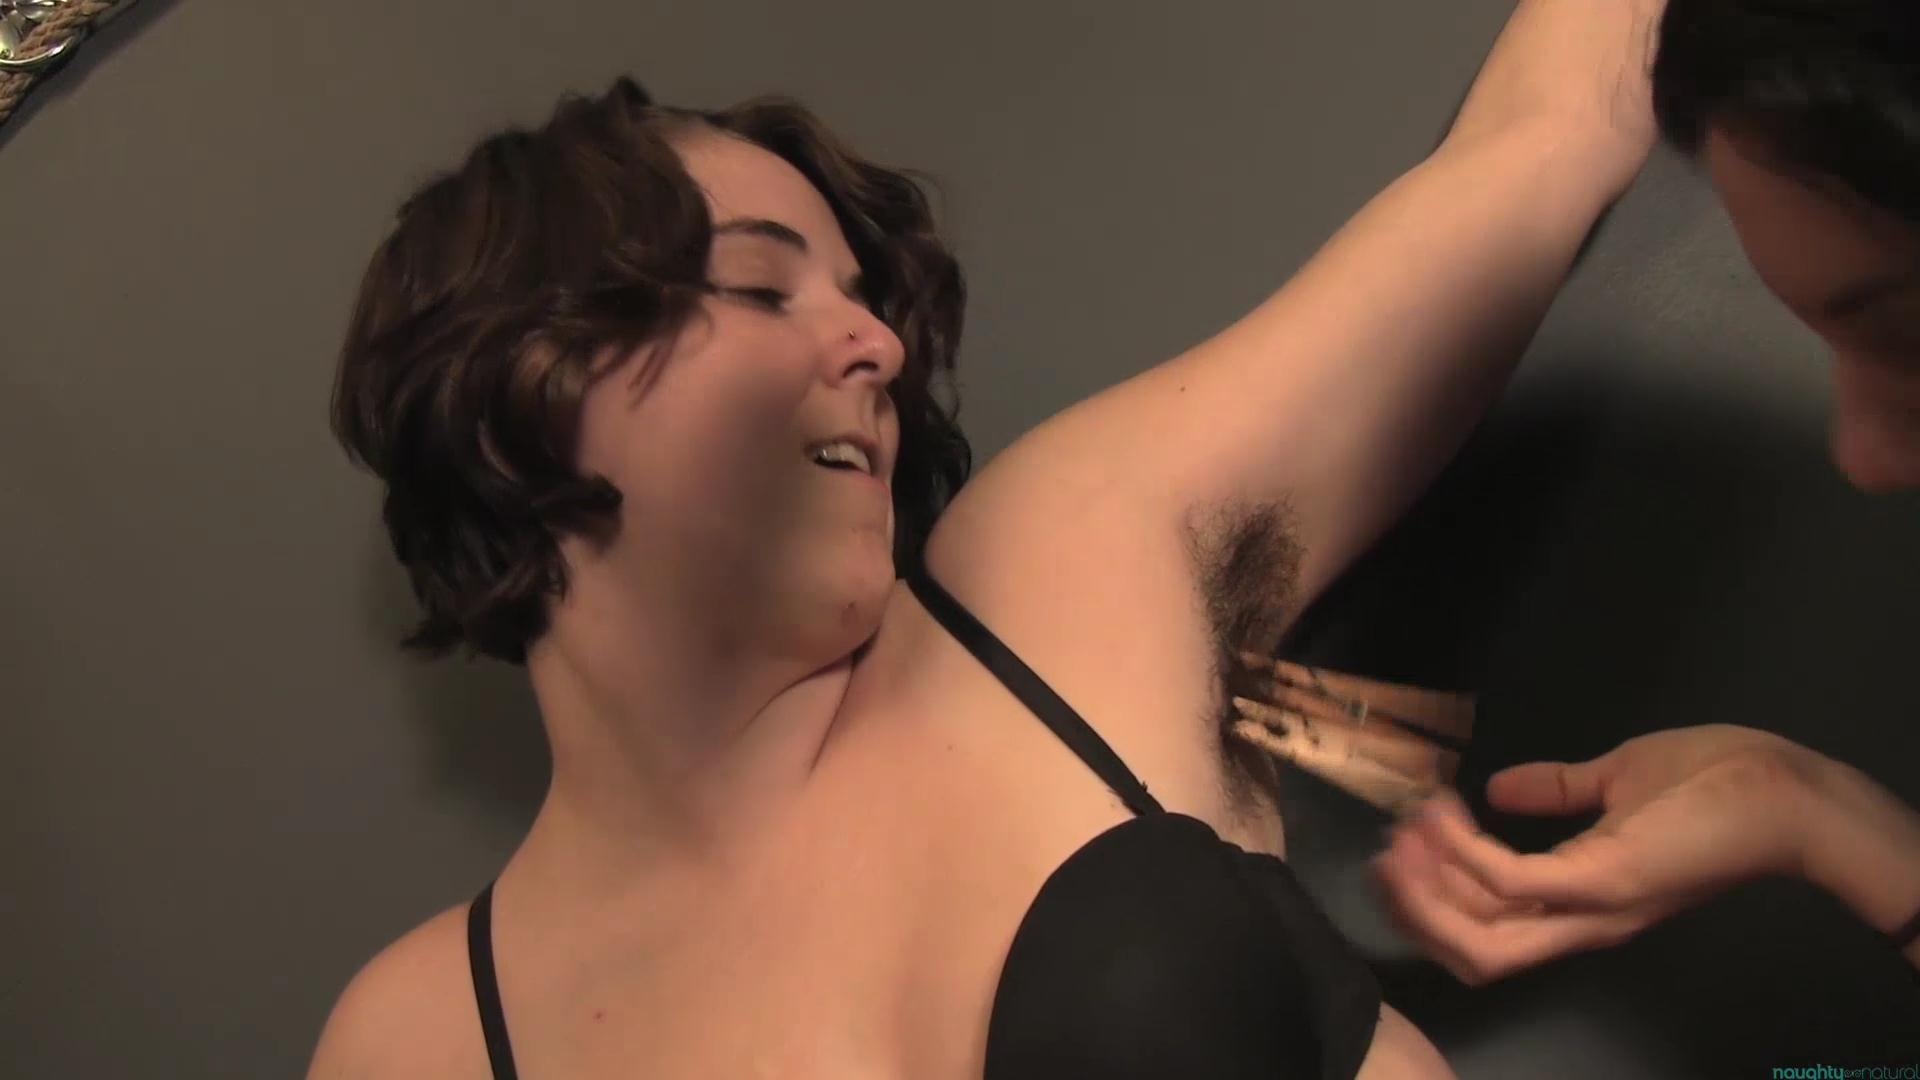 Hairy Harley Video Clips 3